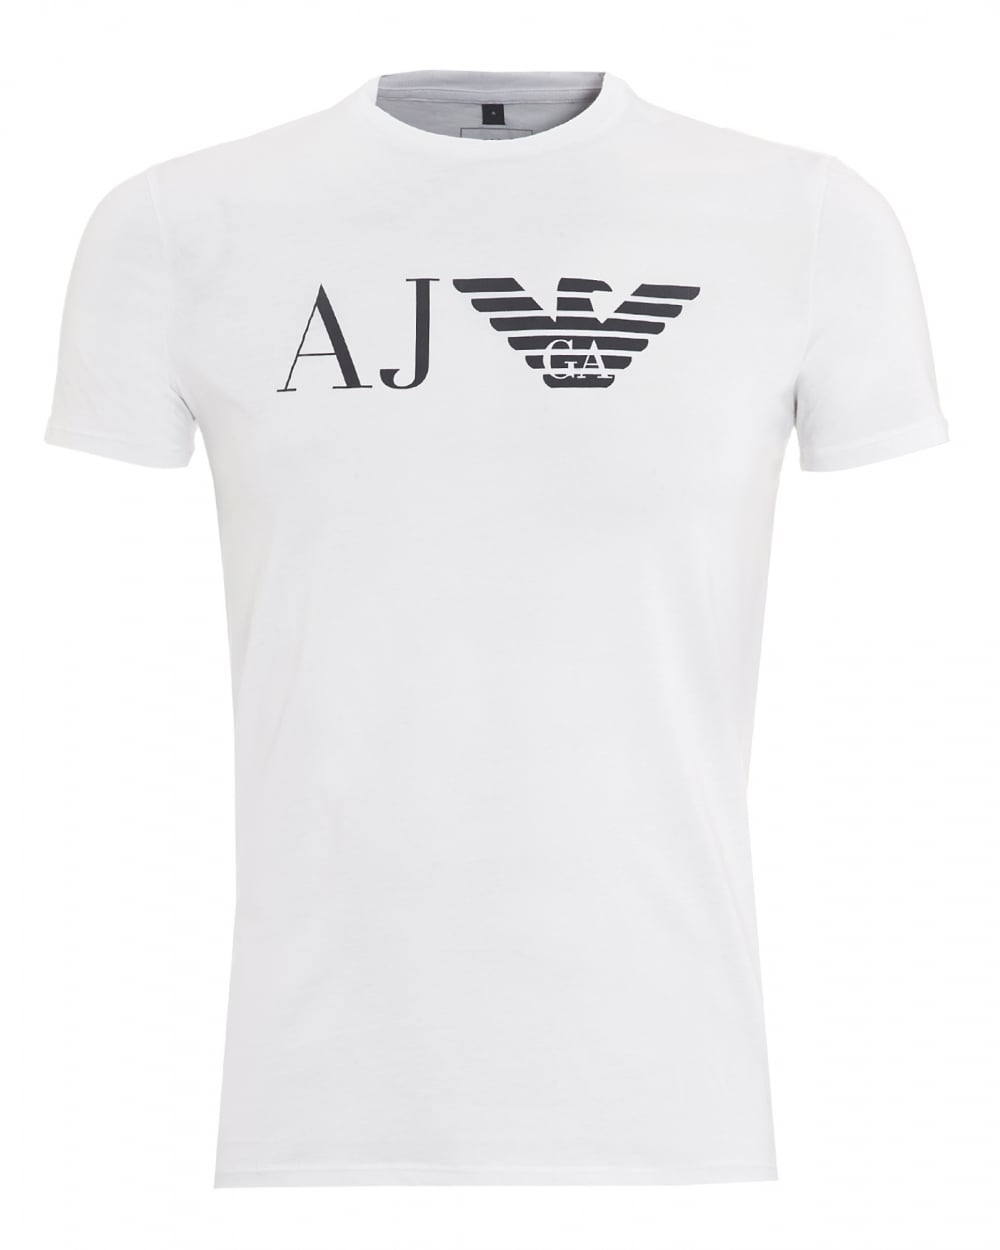 armani jeans mens aj logo t shirt slim fit white tee